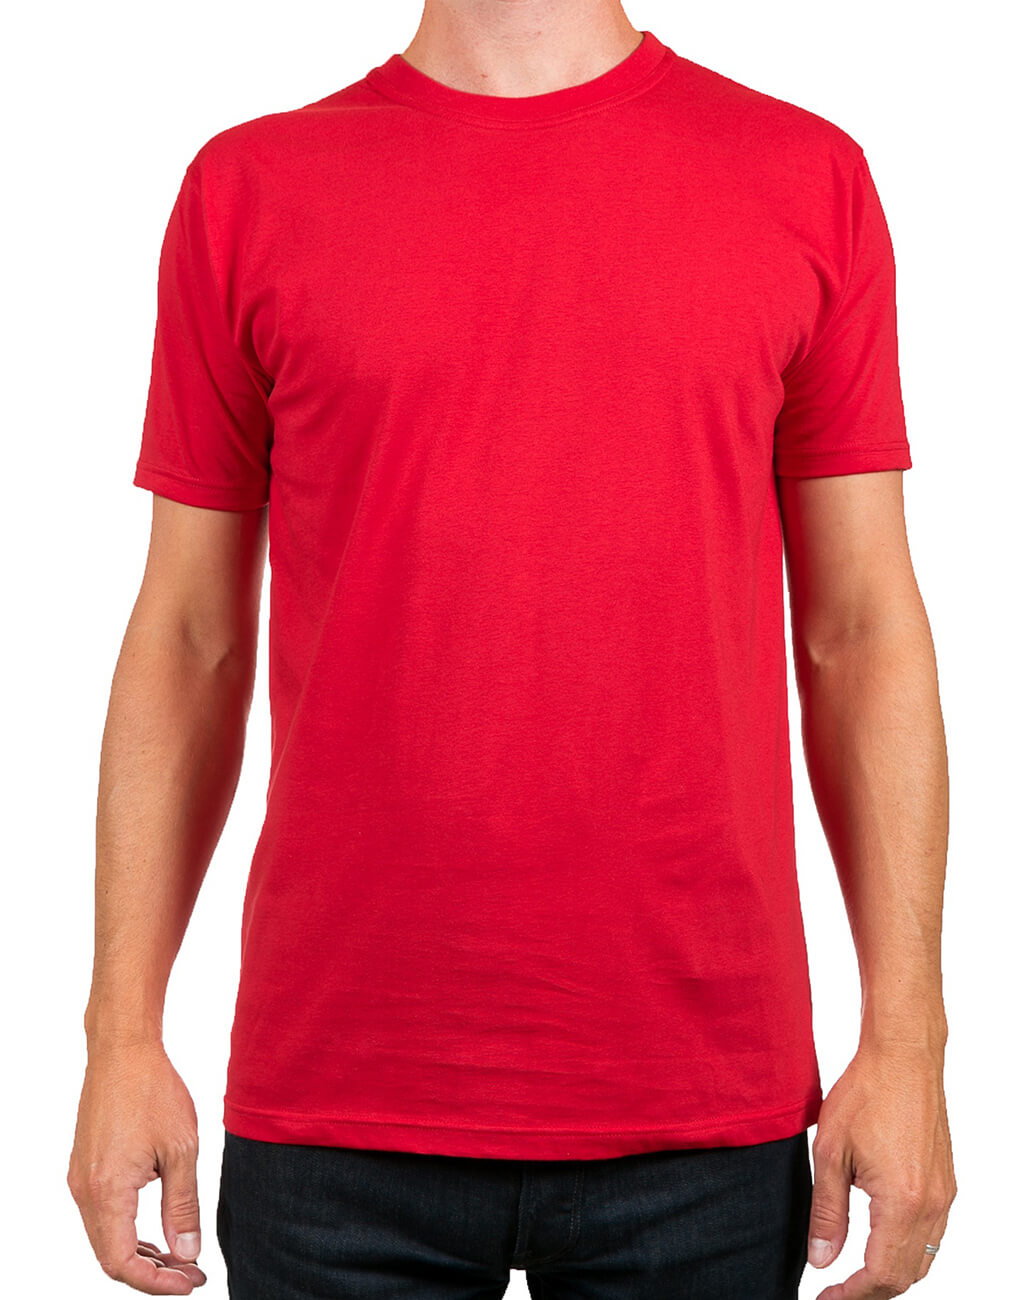 Mans : Half Sleave T-shirt Red